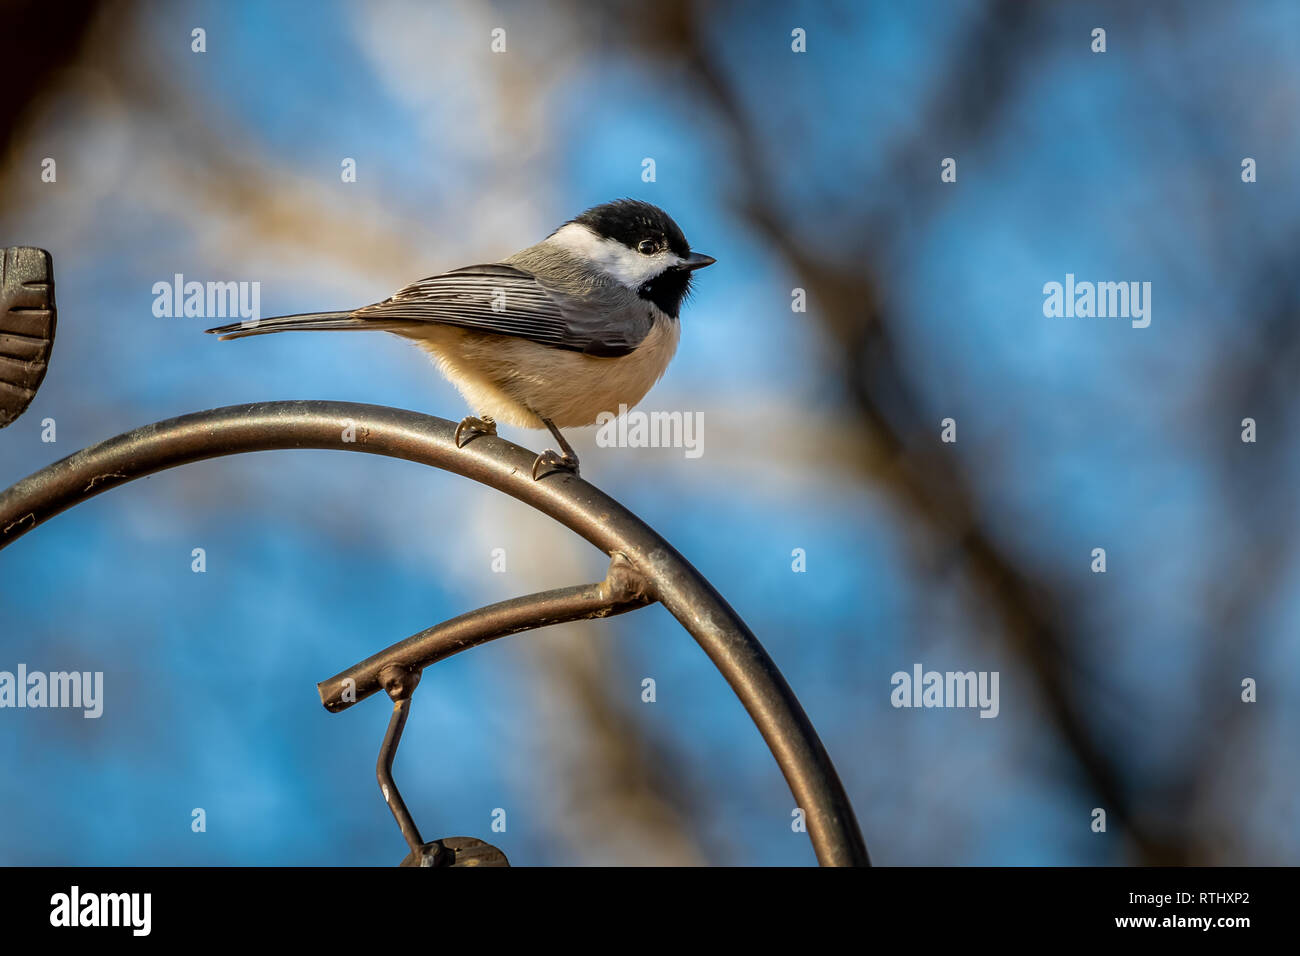 Carolina Chickadee (Poecile carolinensis) on a feeder - Stock Image